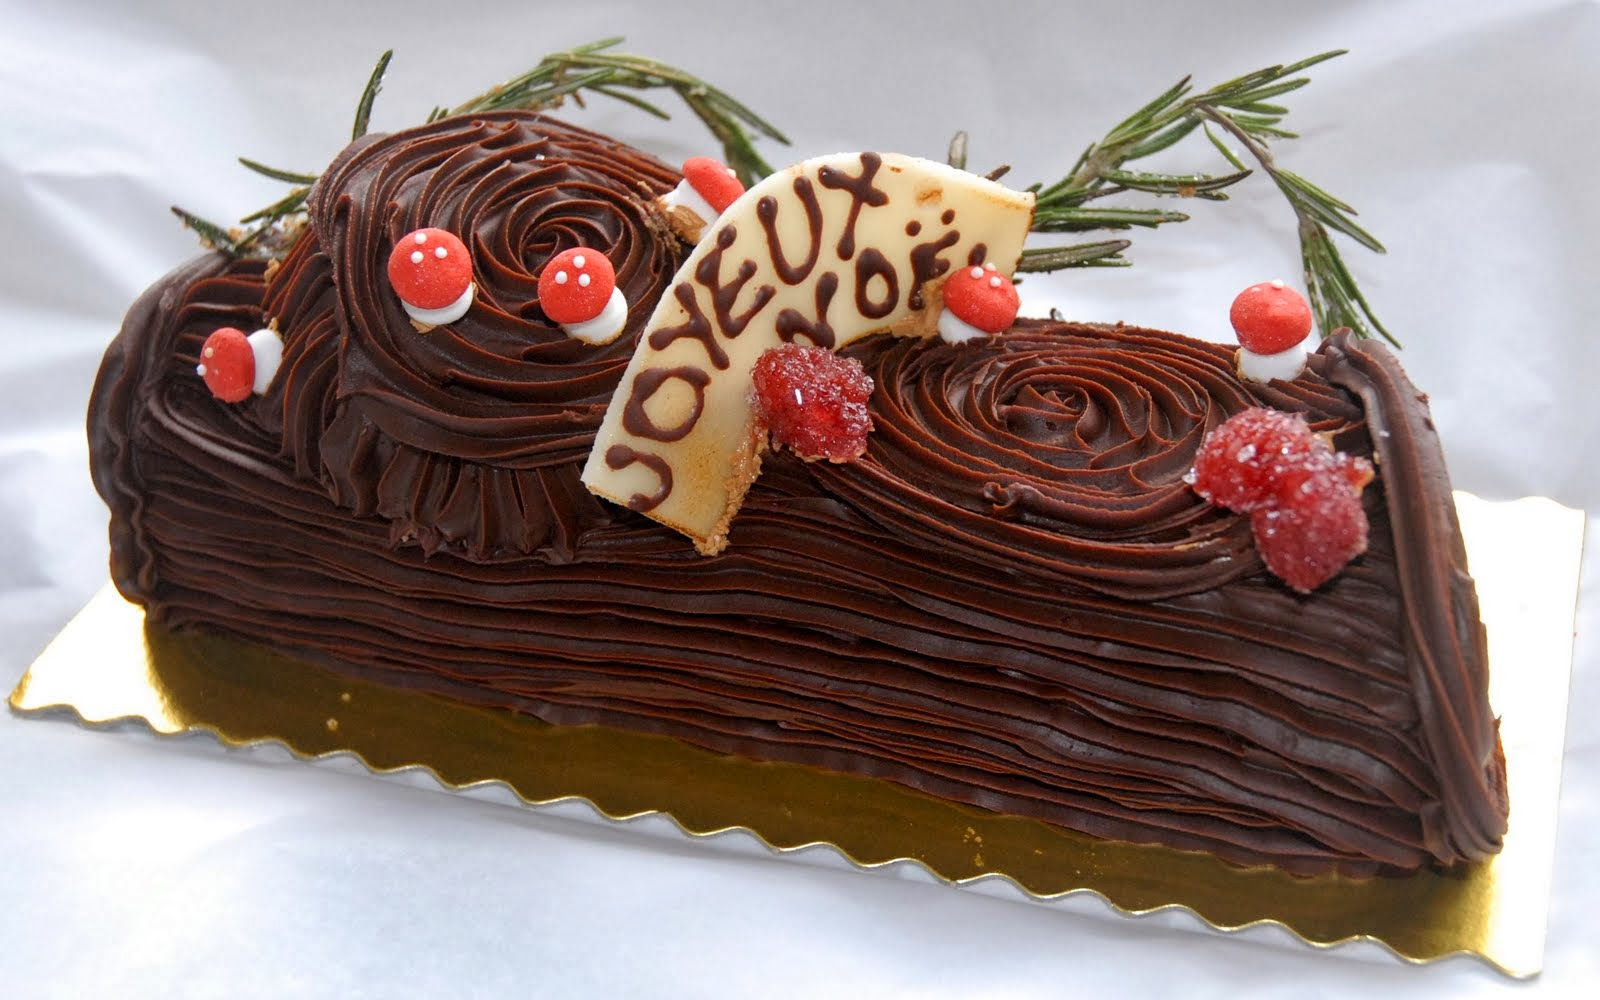 Oh, by the way...: Le Bûche de Noël